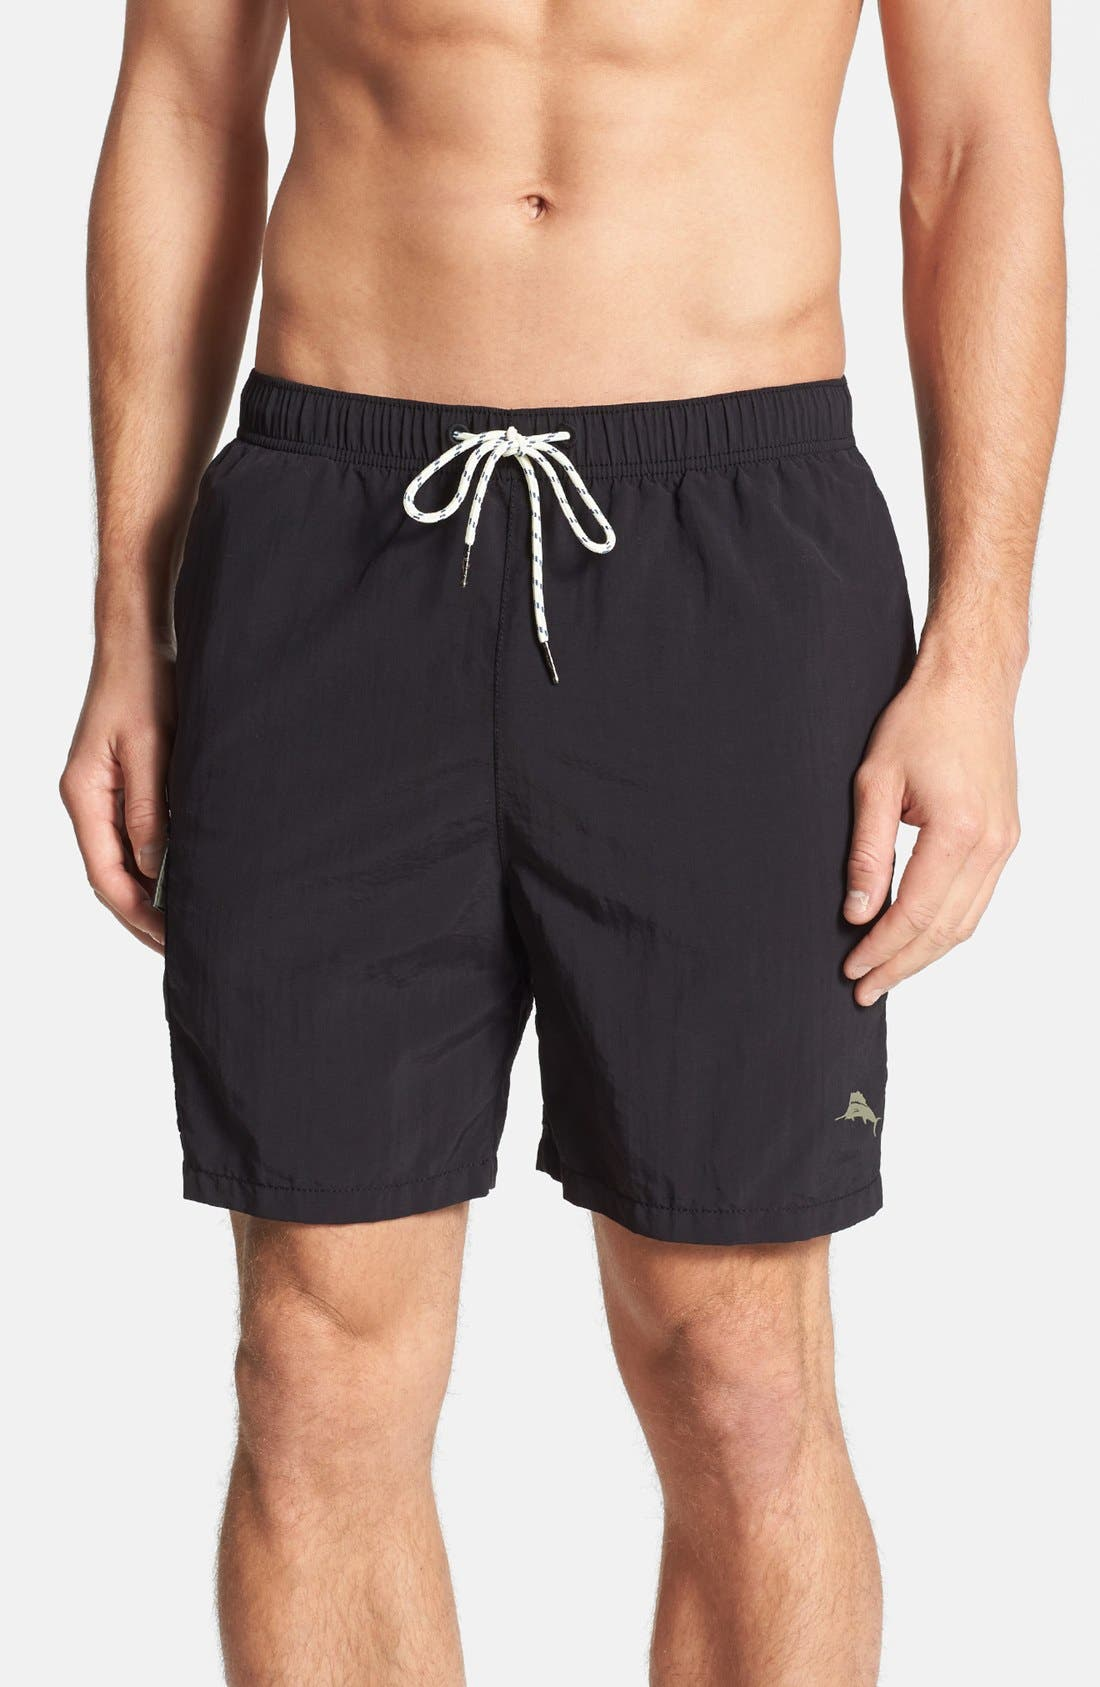 Tommy Bahama 'The Naples Happy Go Cargo' Swim Trunks